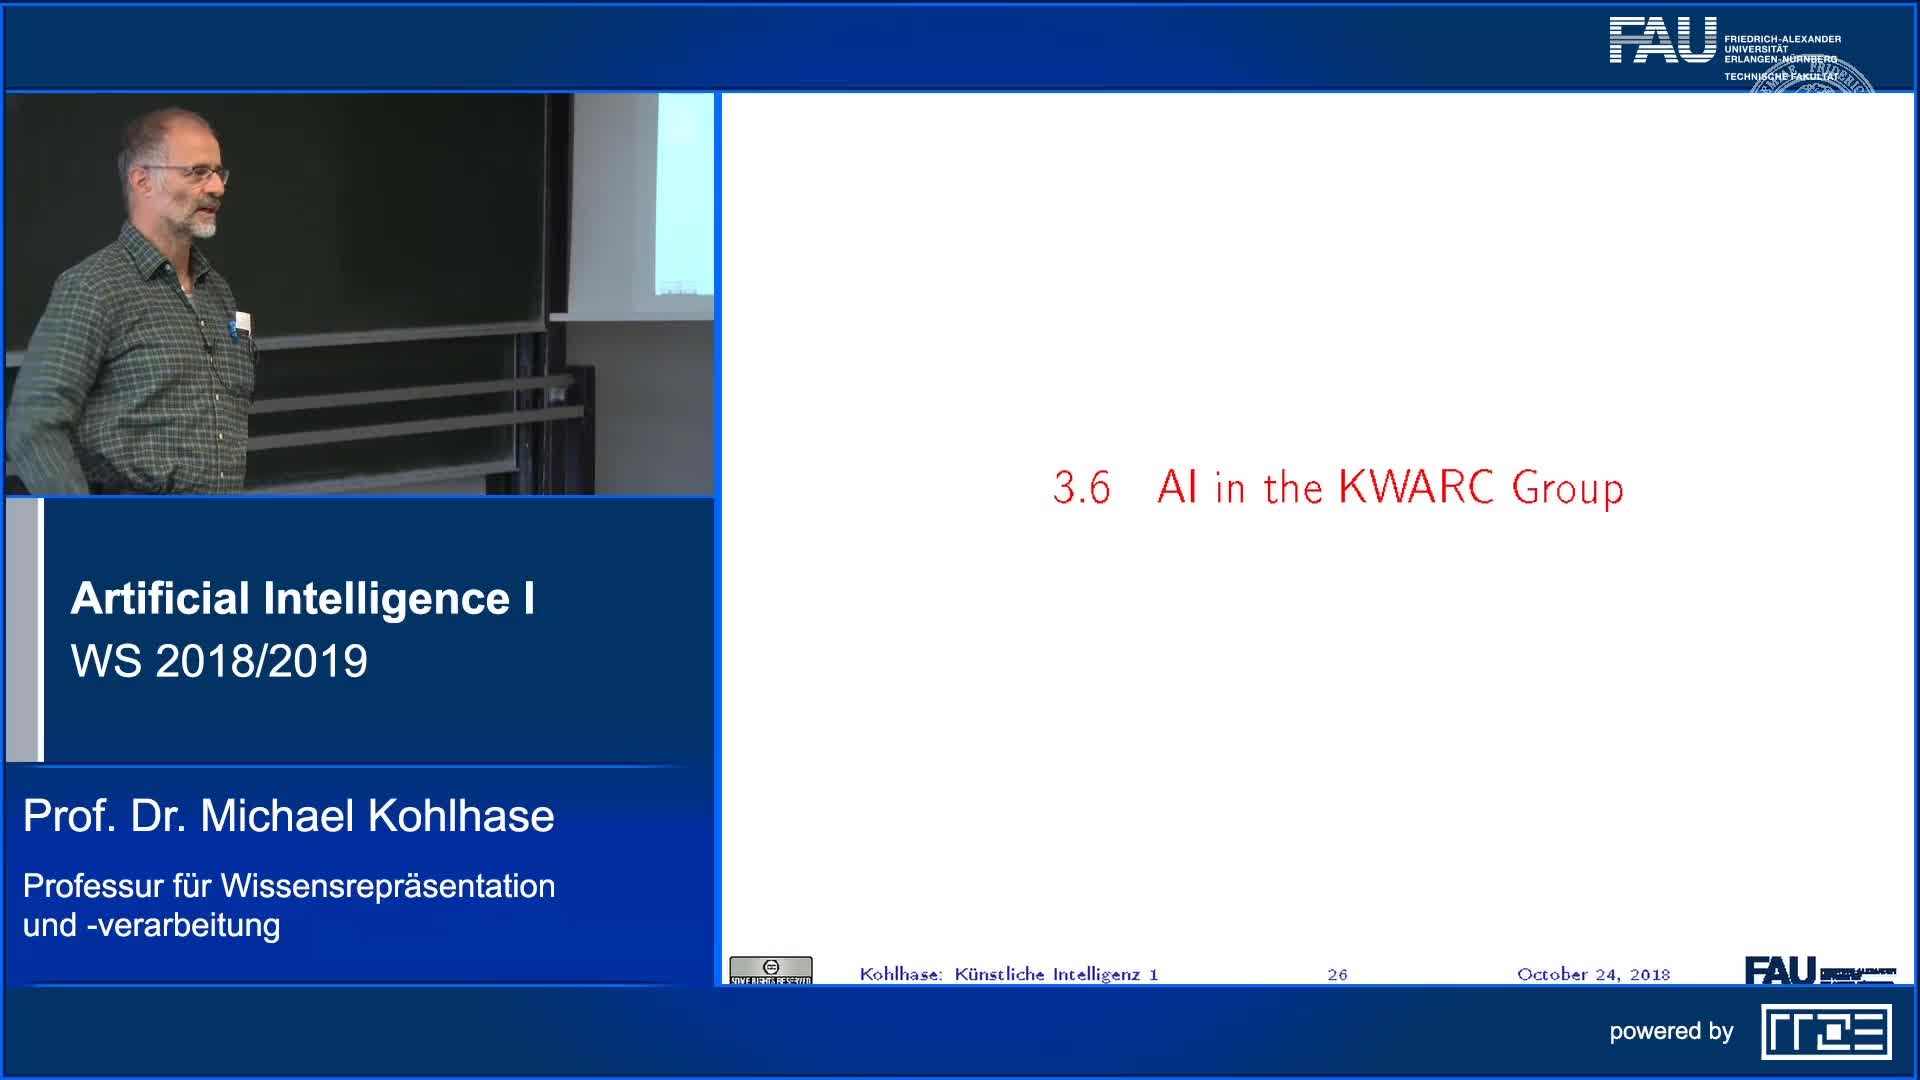 AI in the KWARC Group preview image